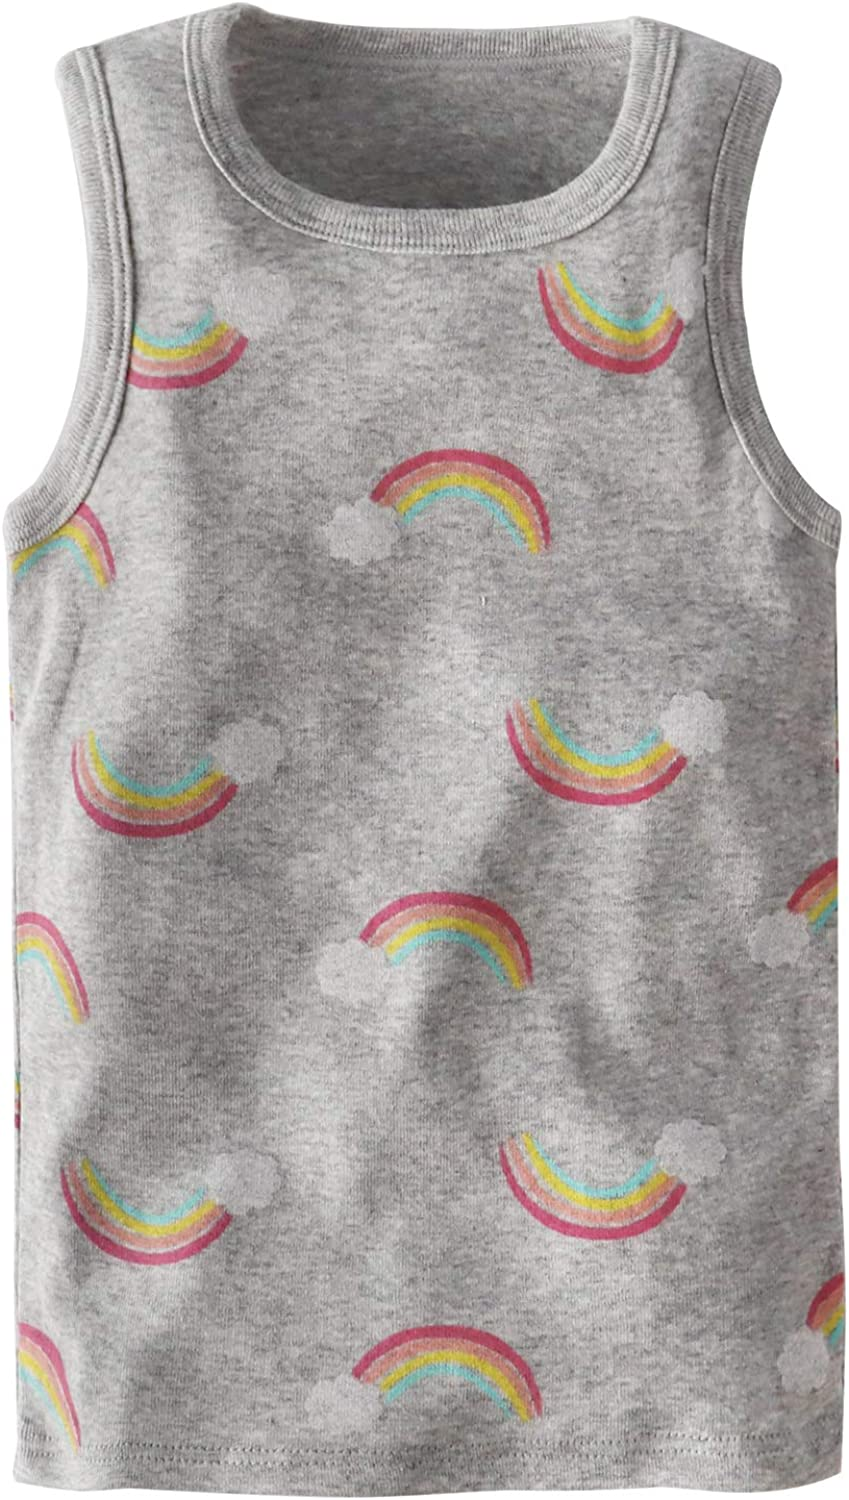 Huaer) Toddler Boys' 2-3 Pack Tank Tops (Rainbow, 3T)